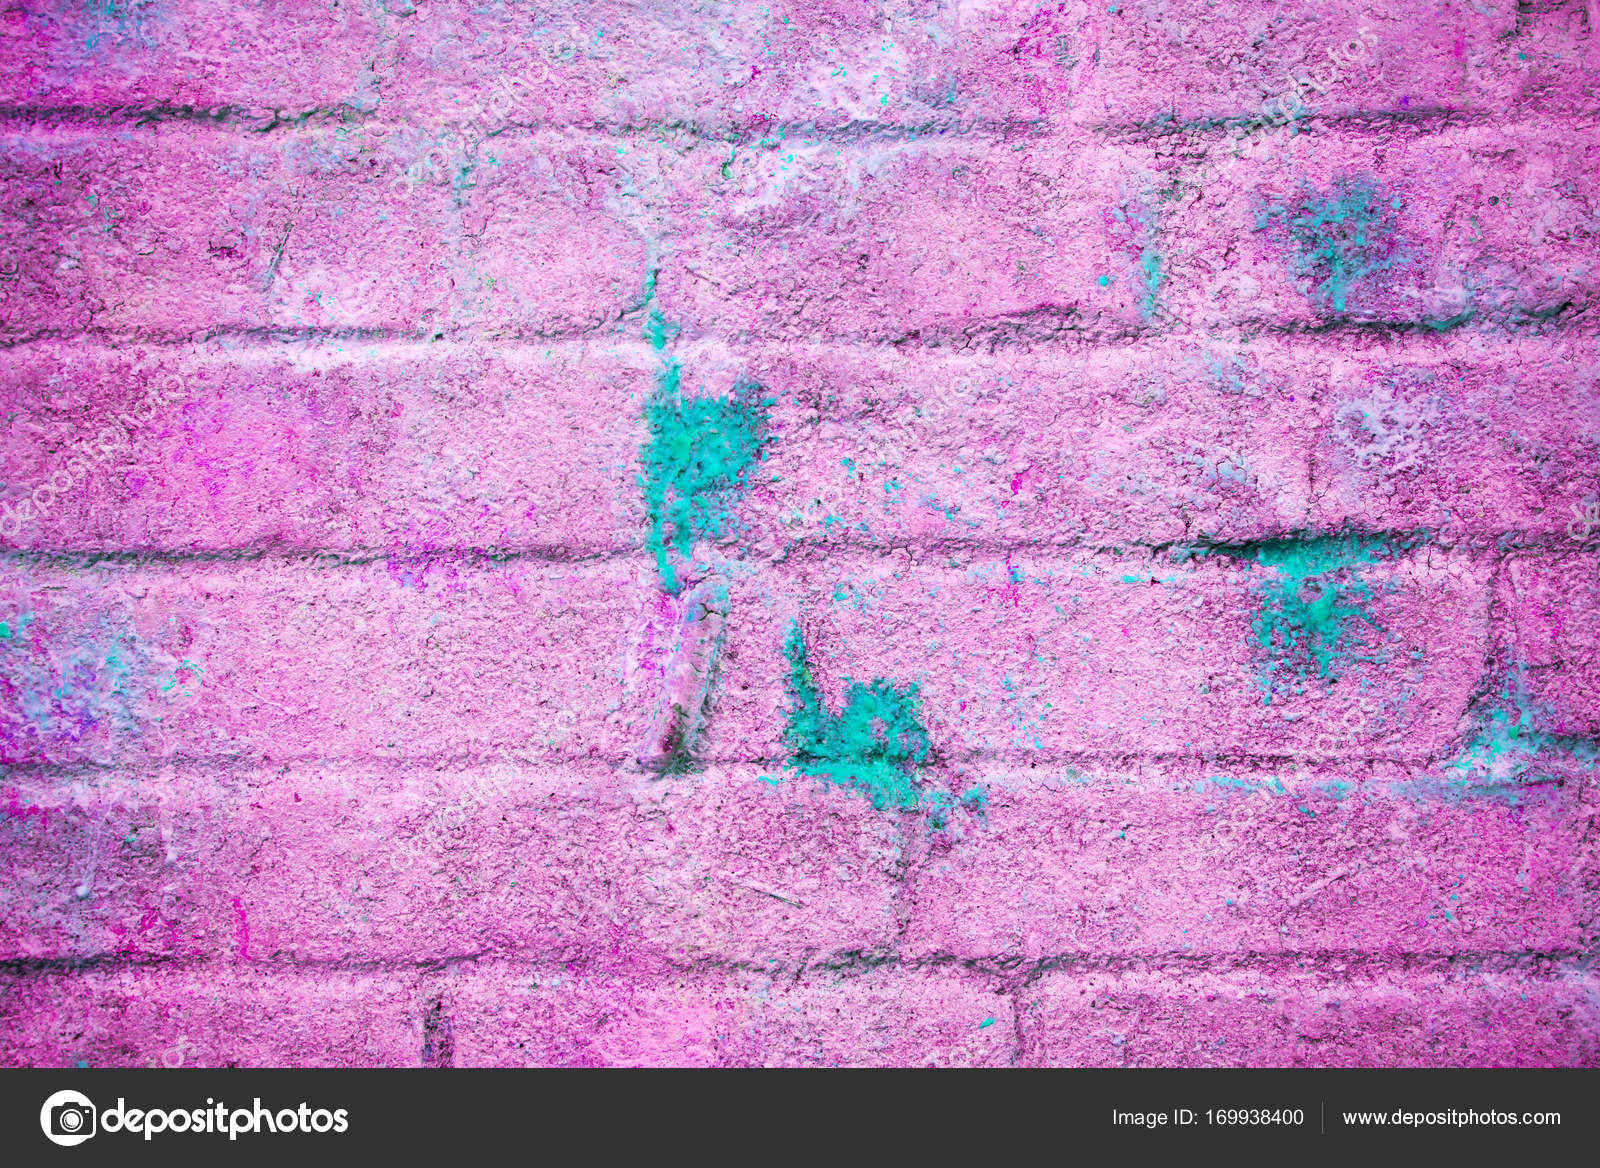 Background And Wallpaper Or Texture Pink Brick Wall With Stains Of Blue Paint Photo By Yarkovoy